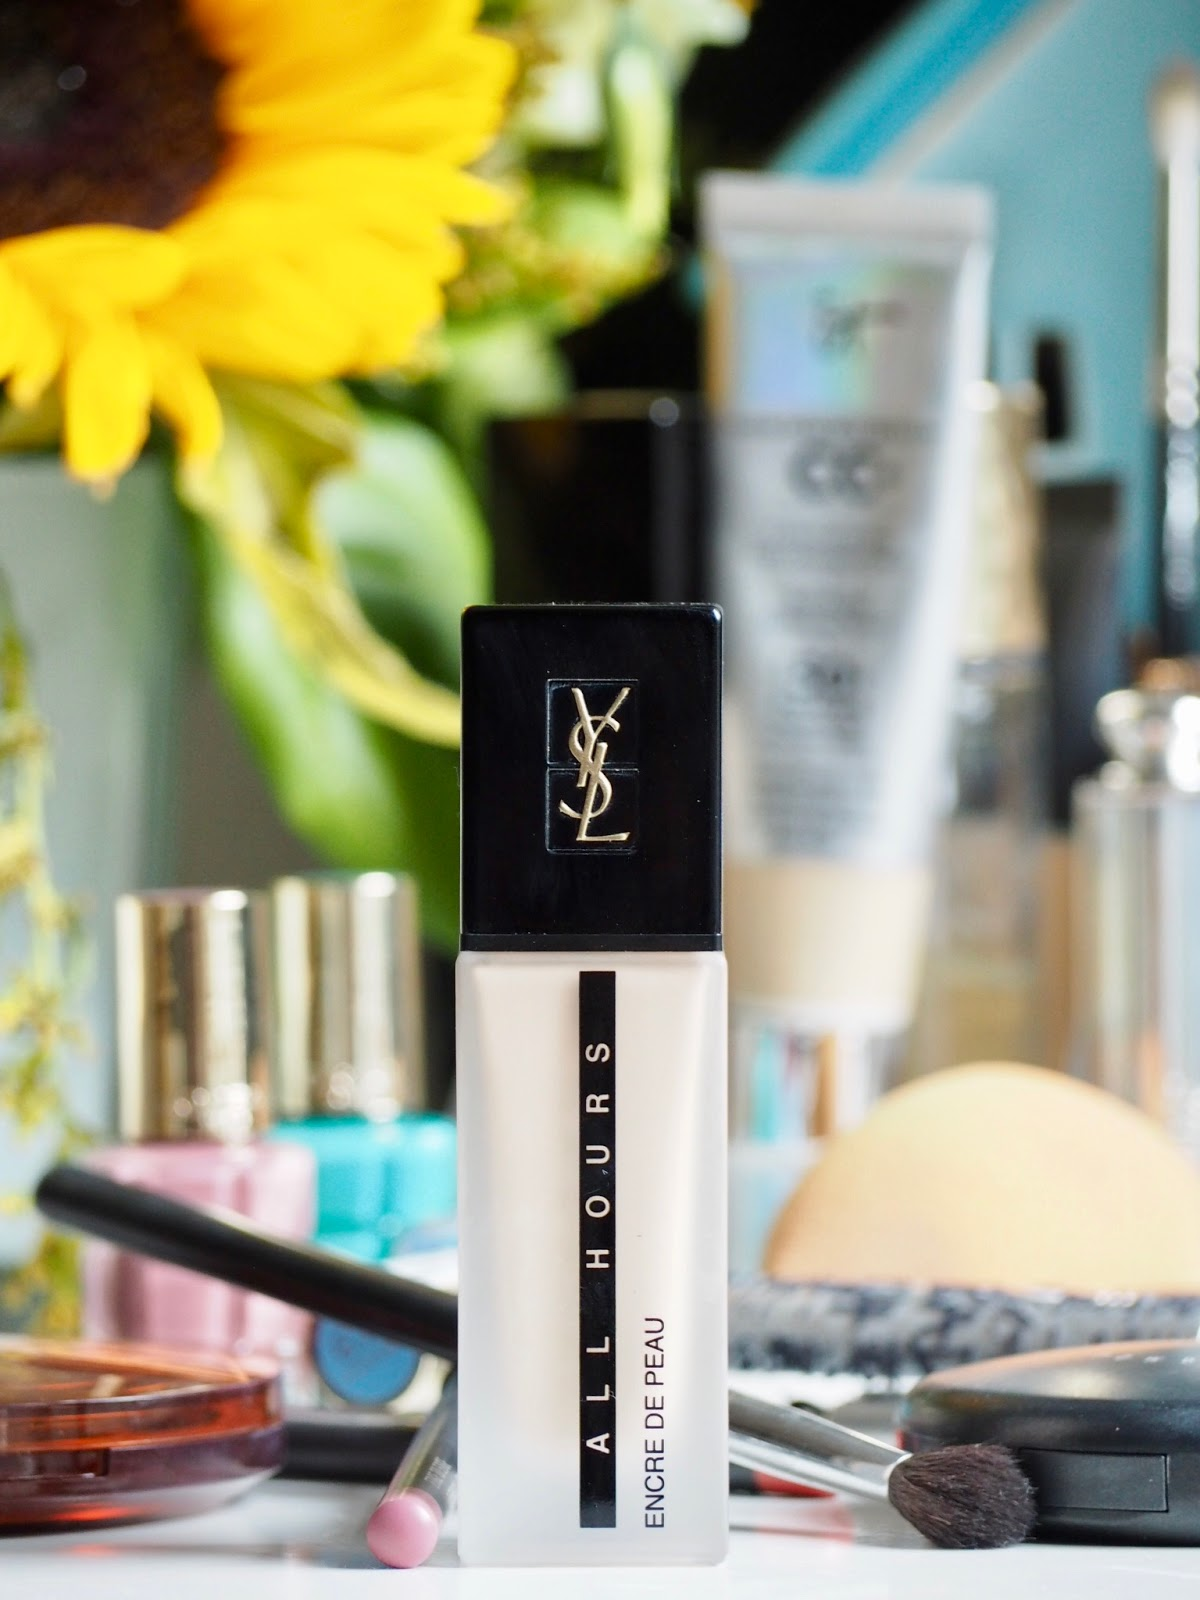 YSL All Hours Foundation Full Review + Swatches